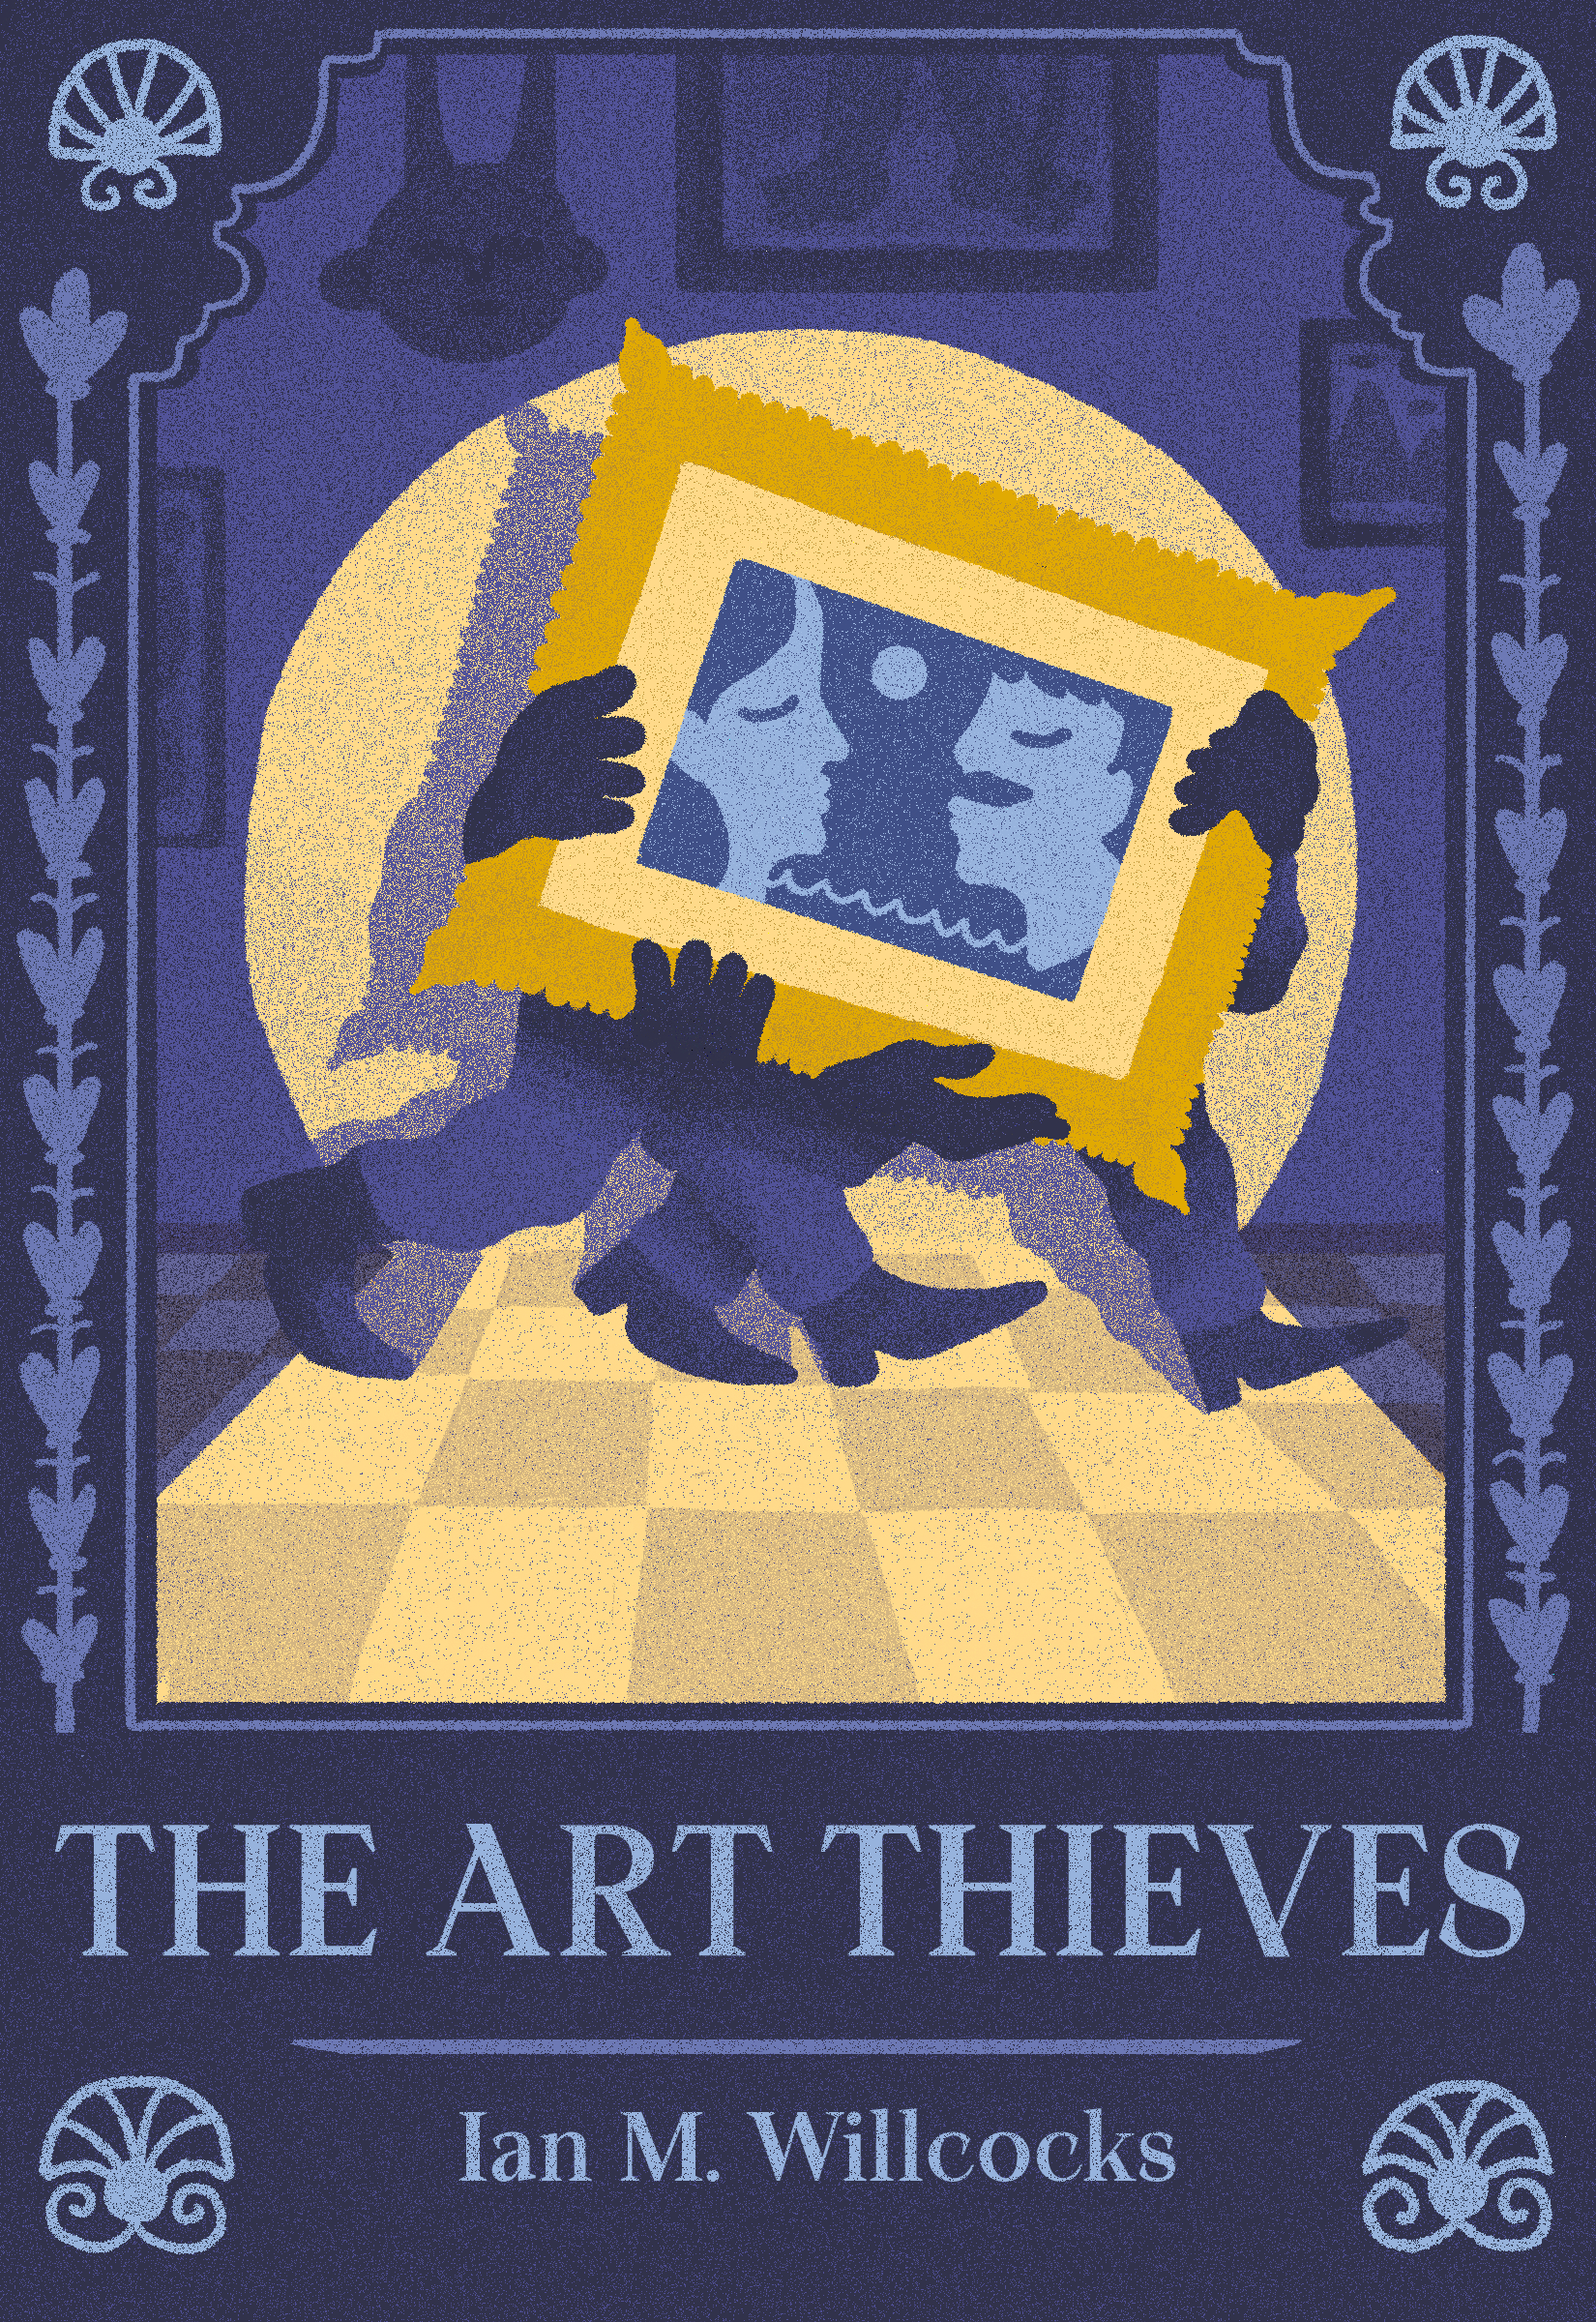 The Art Thieves